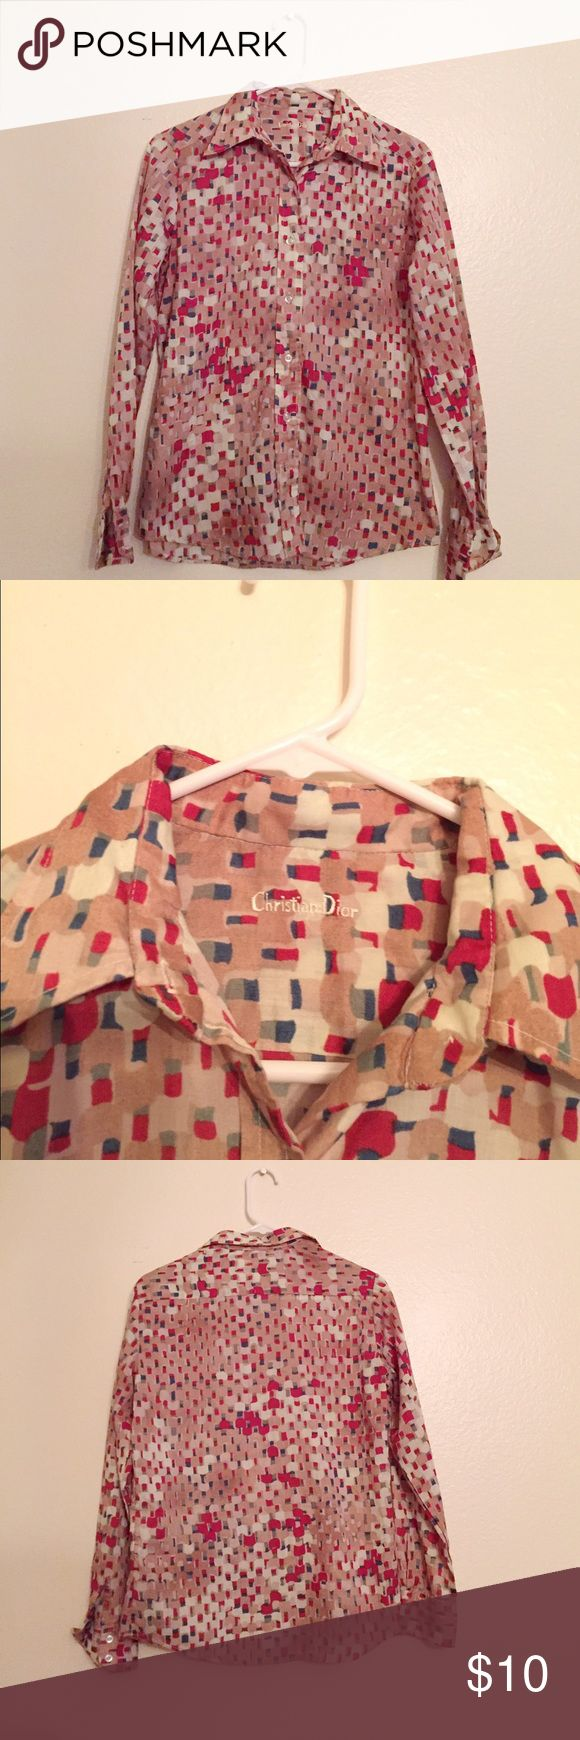 """Vintage Print Blouse Vintage tan button up blouse with colorful pattern. There's a """"Christian Dior"""" label embroidered at the collar. I bought this from a flea market in Los Angeles so I have no idea if this is authentic (hence the price). It's perfect tucked into skirts or layered underneath sweaters. Fits as a M but measurements are available upon request. Vintage Tops Blouses"""